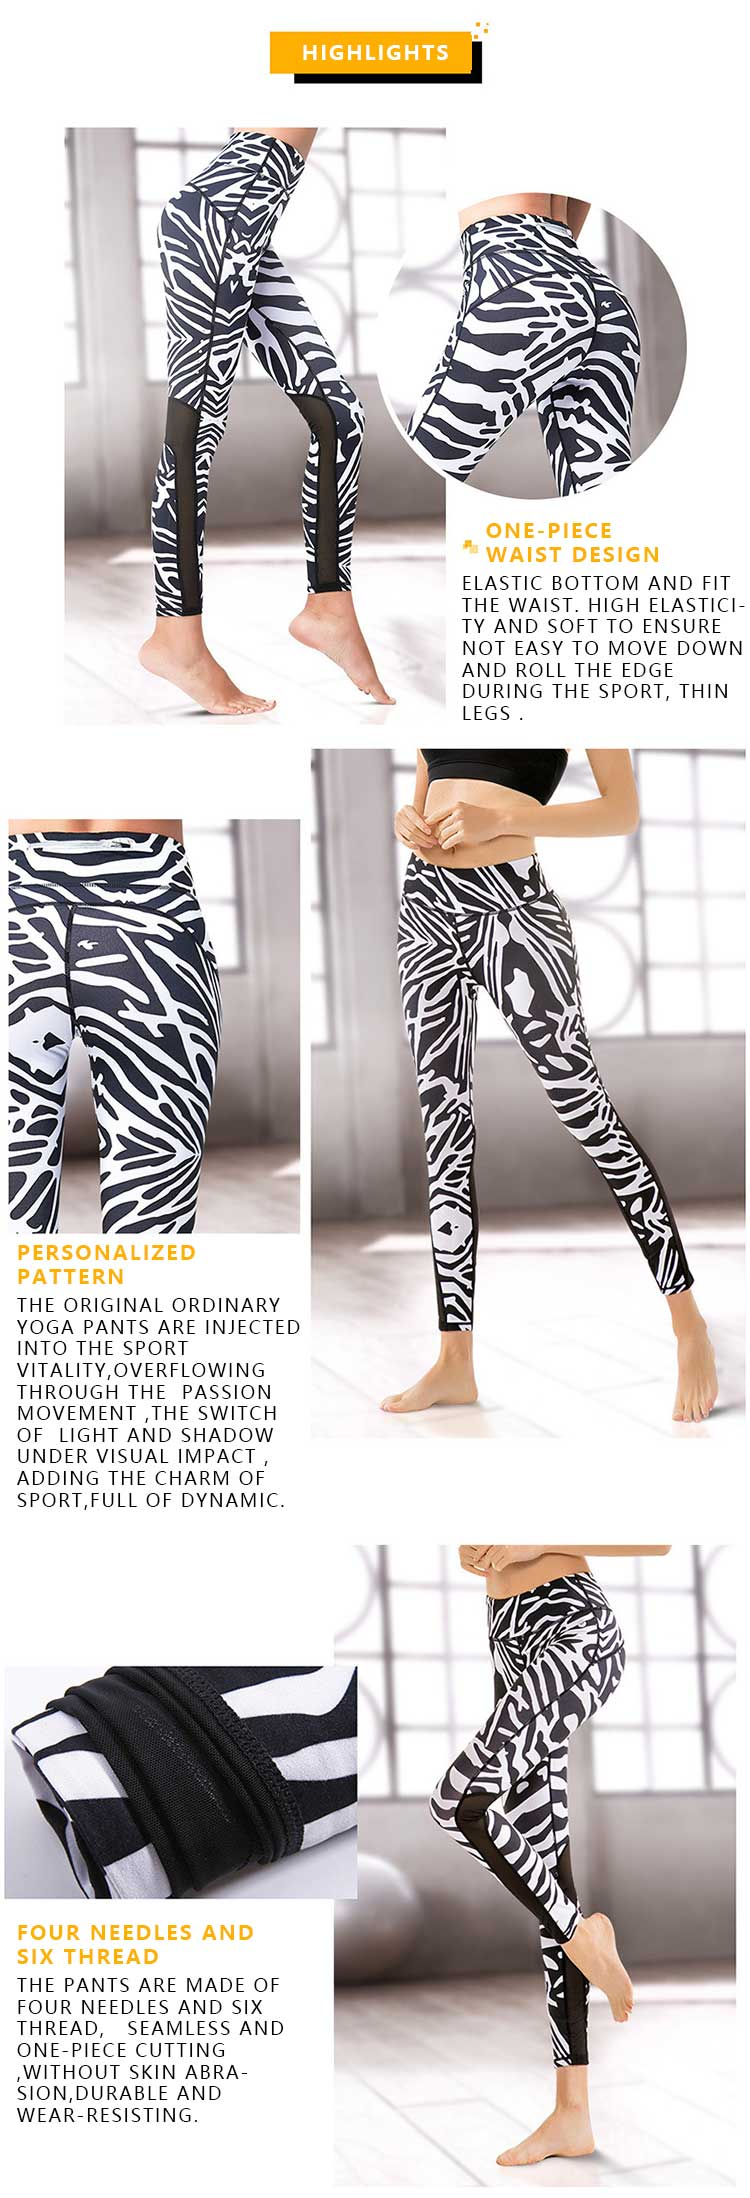 Zebra-print-mesh-leggings-product-highlights